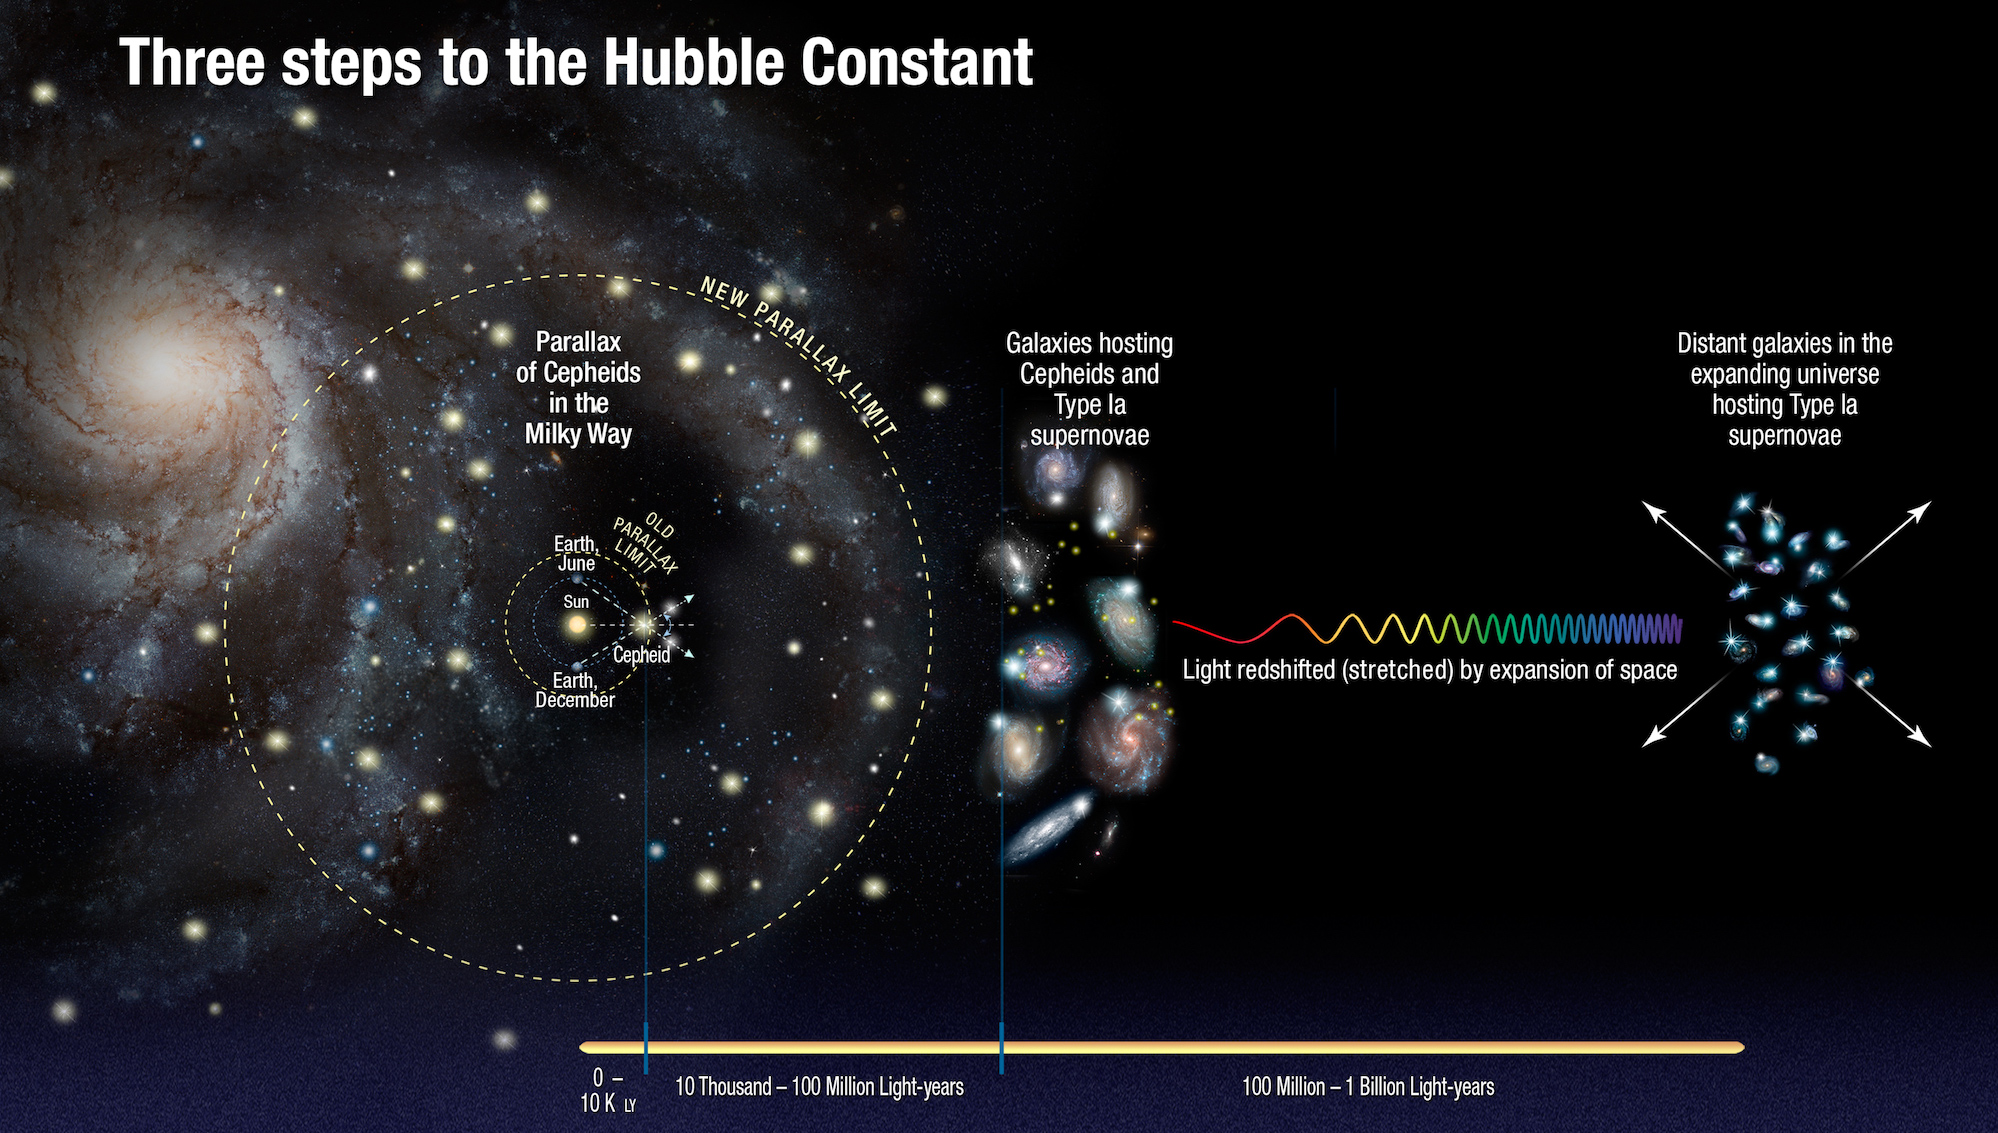 Hubble - cepheid - supernova - Hubble constant